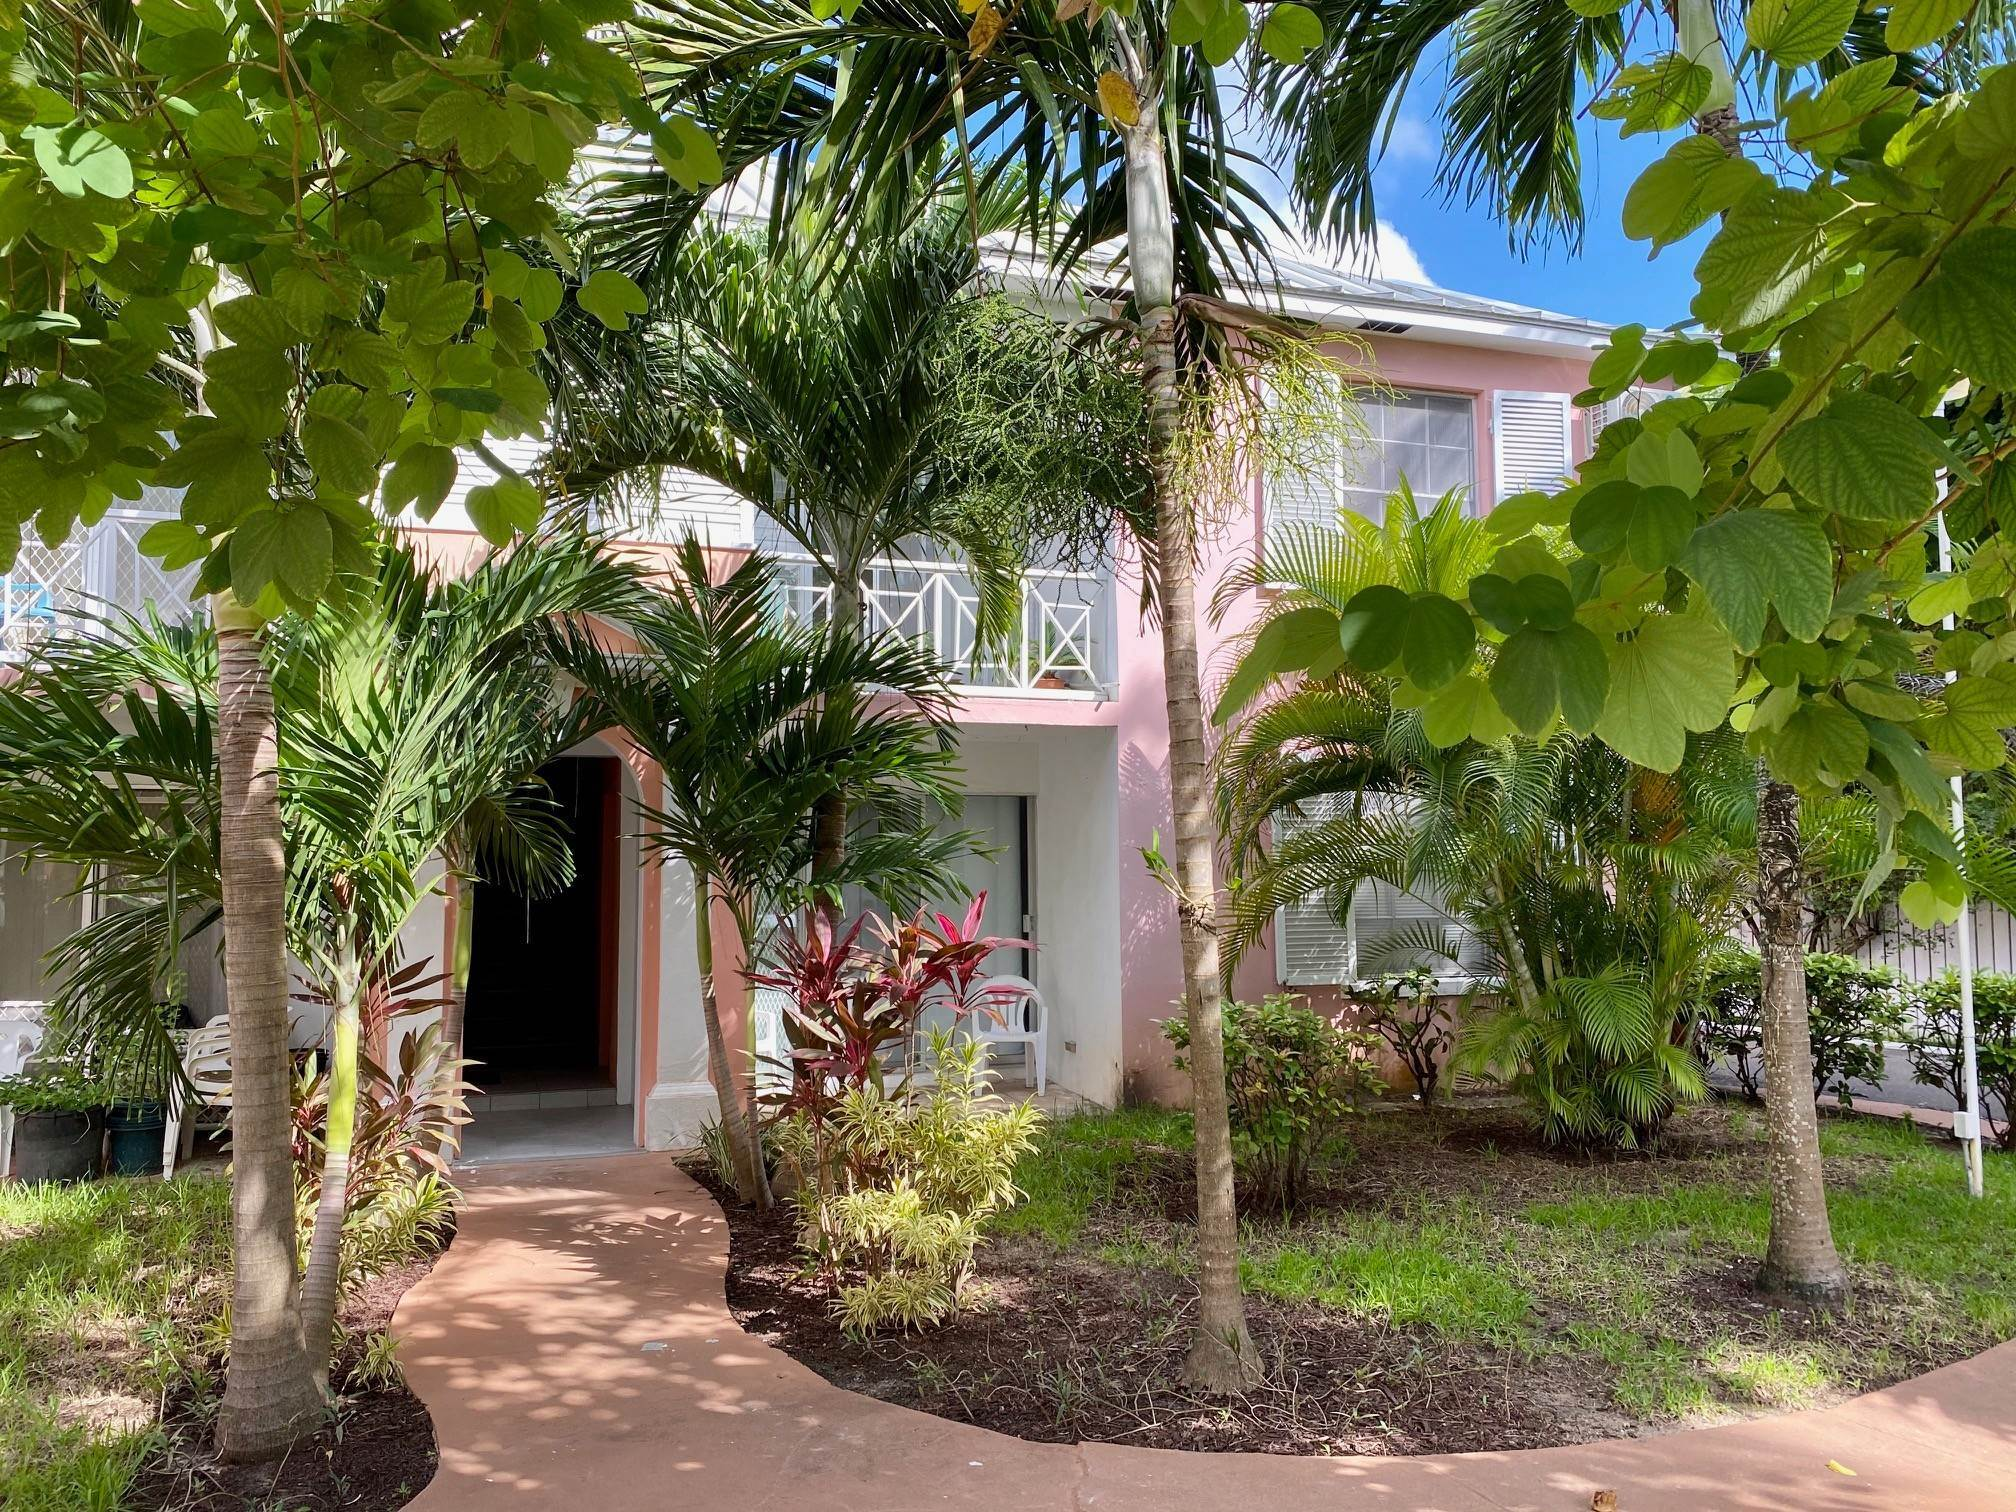 Co-op / Condo for Rent at Garden view renovated condo in the heart of Cable Beach Cable Beach, Nassau And Paradise Island, Bahamas